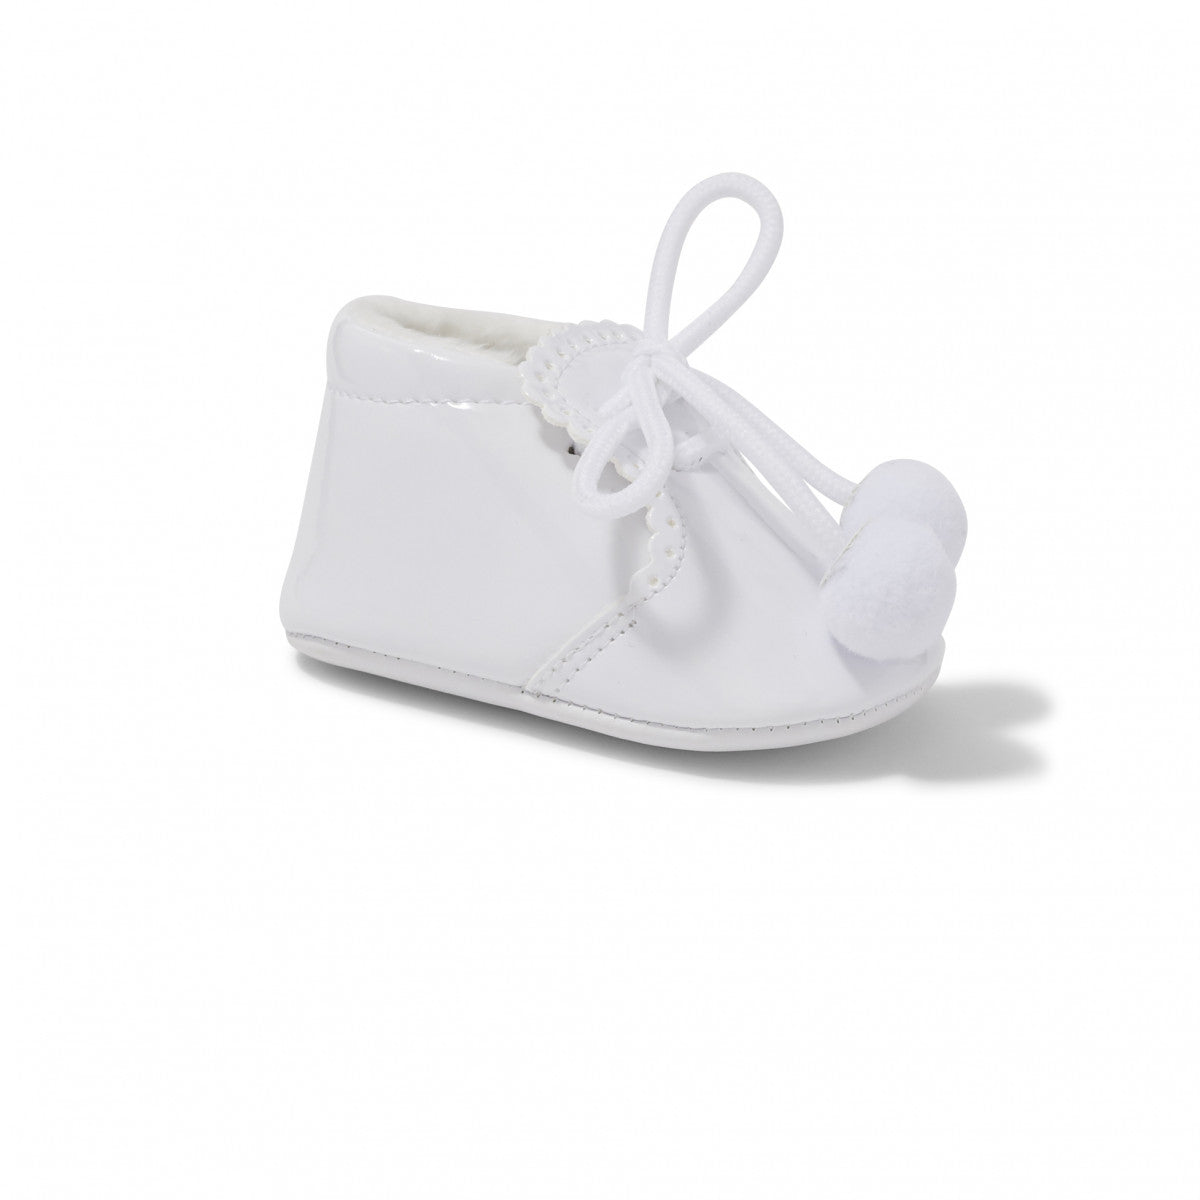 Joe White Pom Pom Pram Shoe